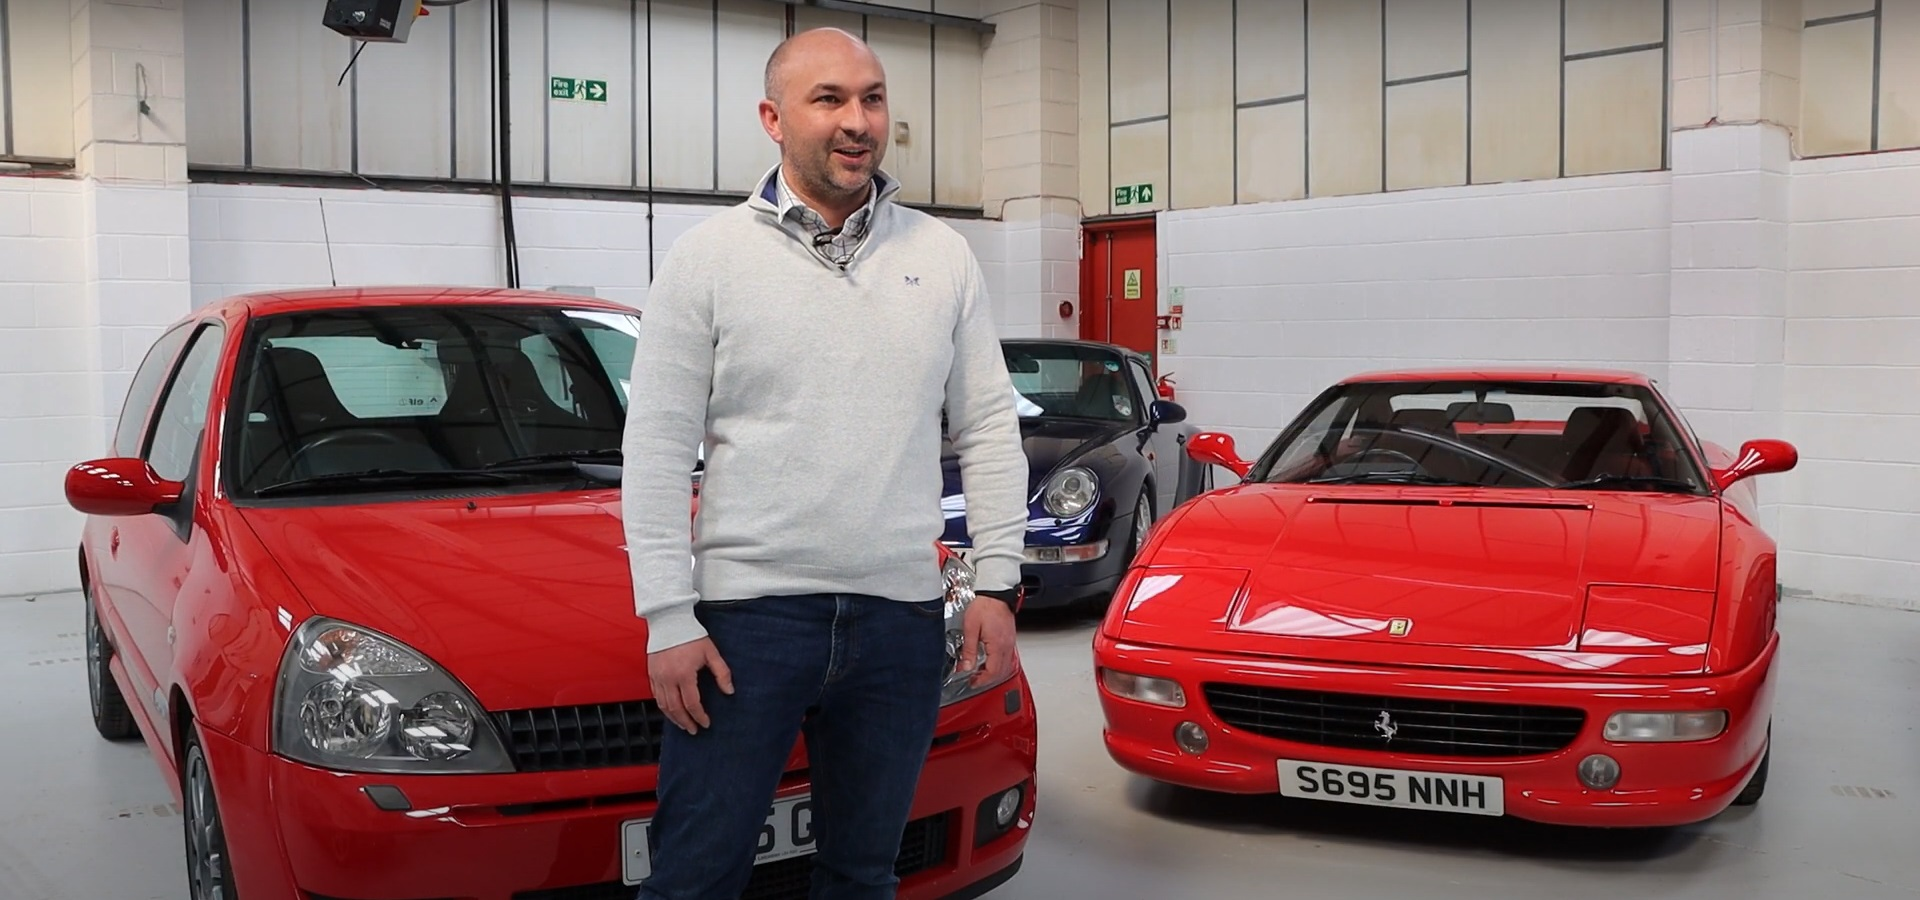 Ecomotive Logistics & Skipton Business Finance: Invoice Finance Helps Vehicle Delivery Business Manage Late Payments